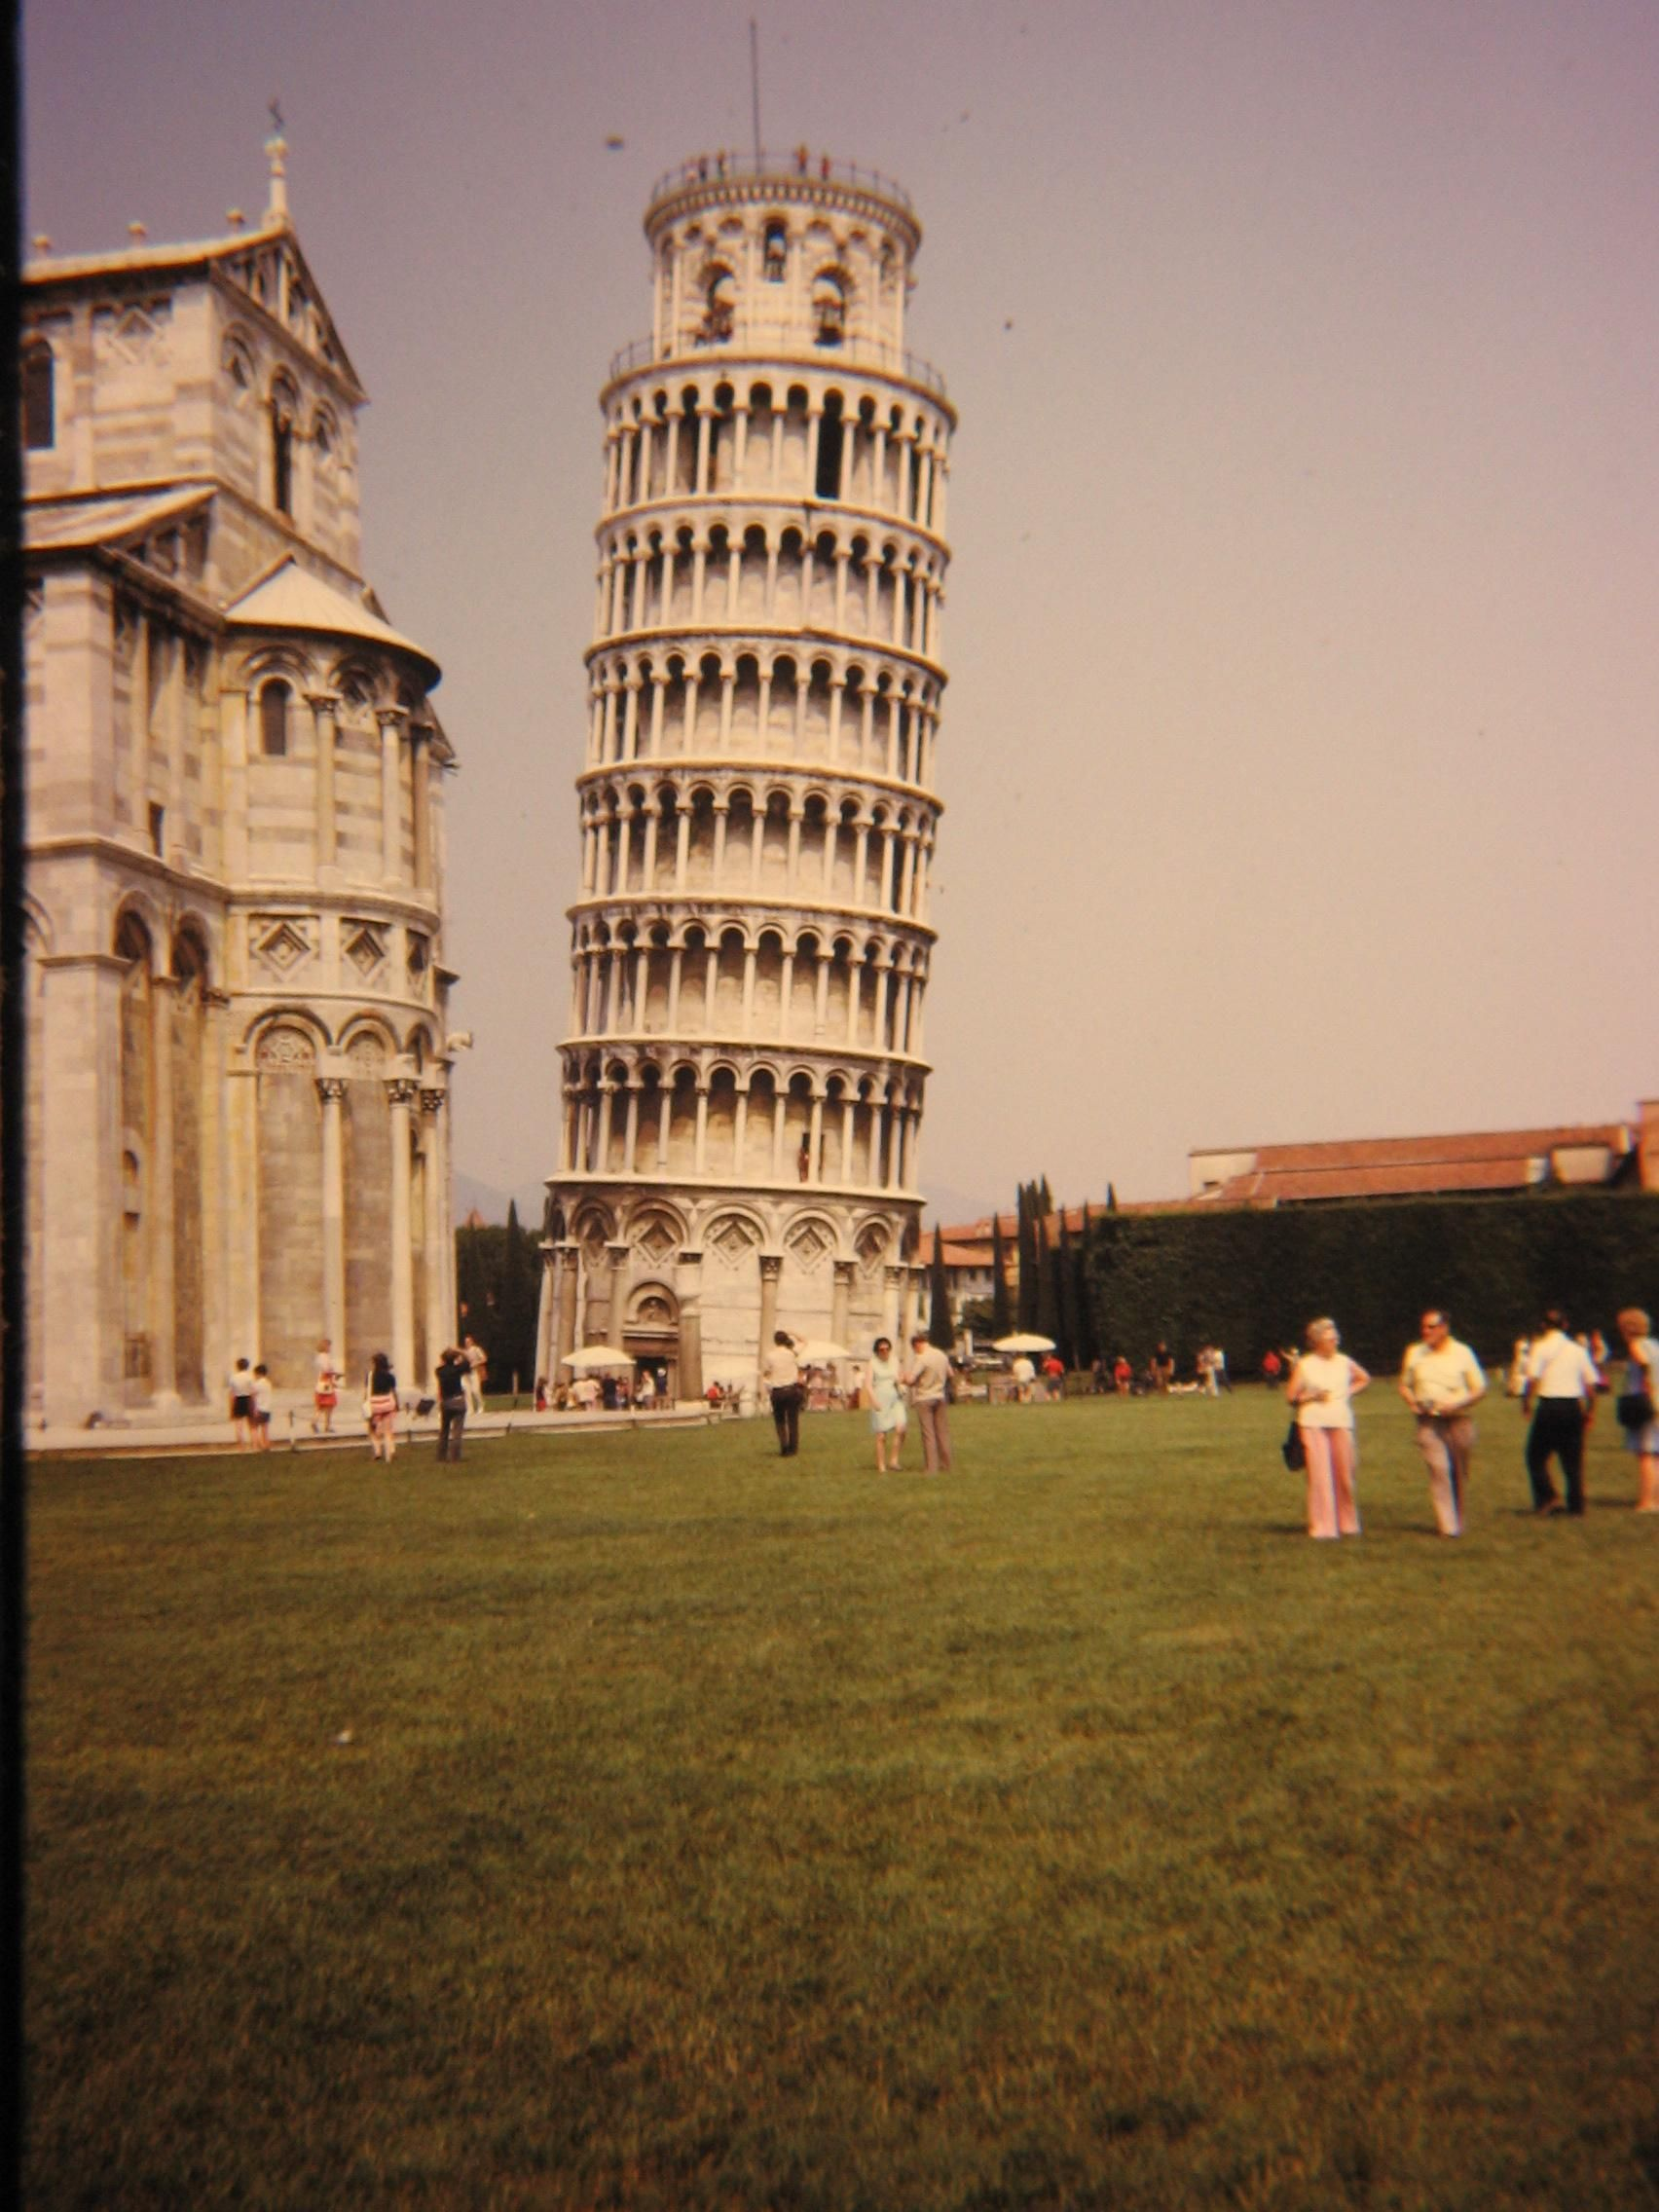 Leaning Tower of Pisa, Italy | Leaning tower of pisa ...